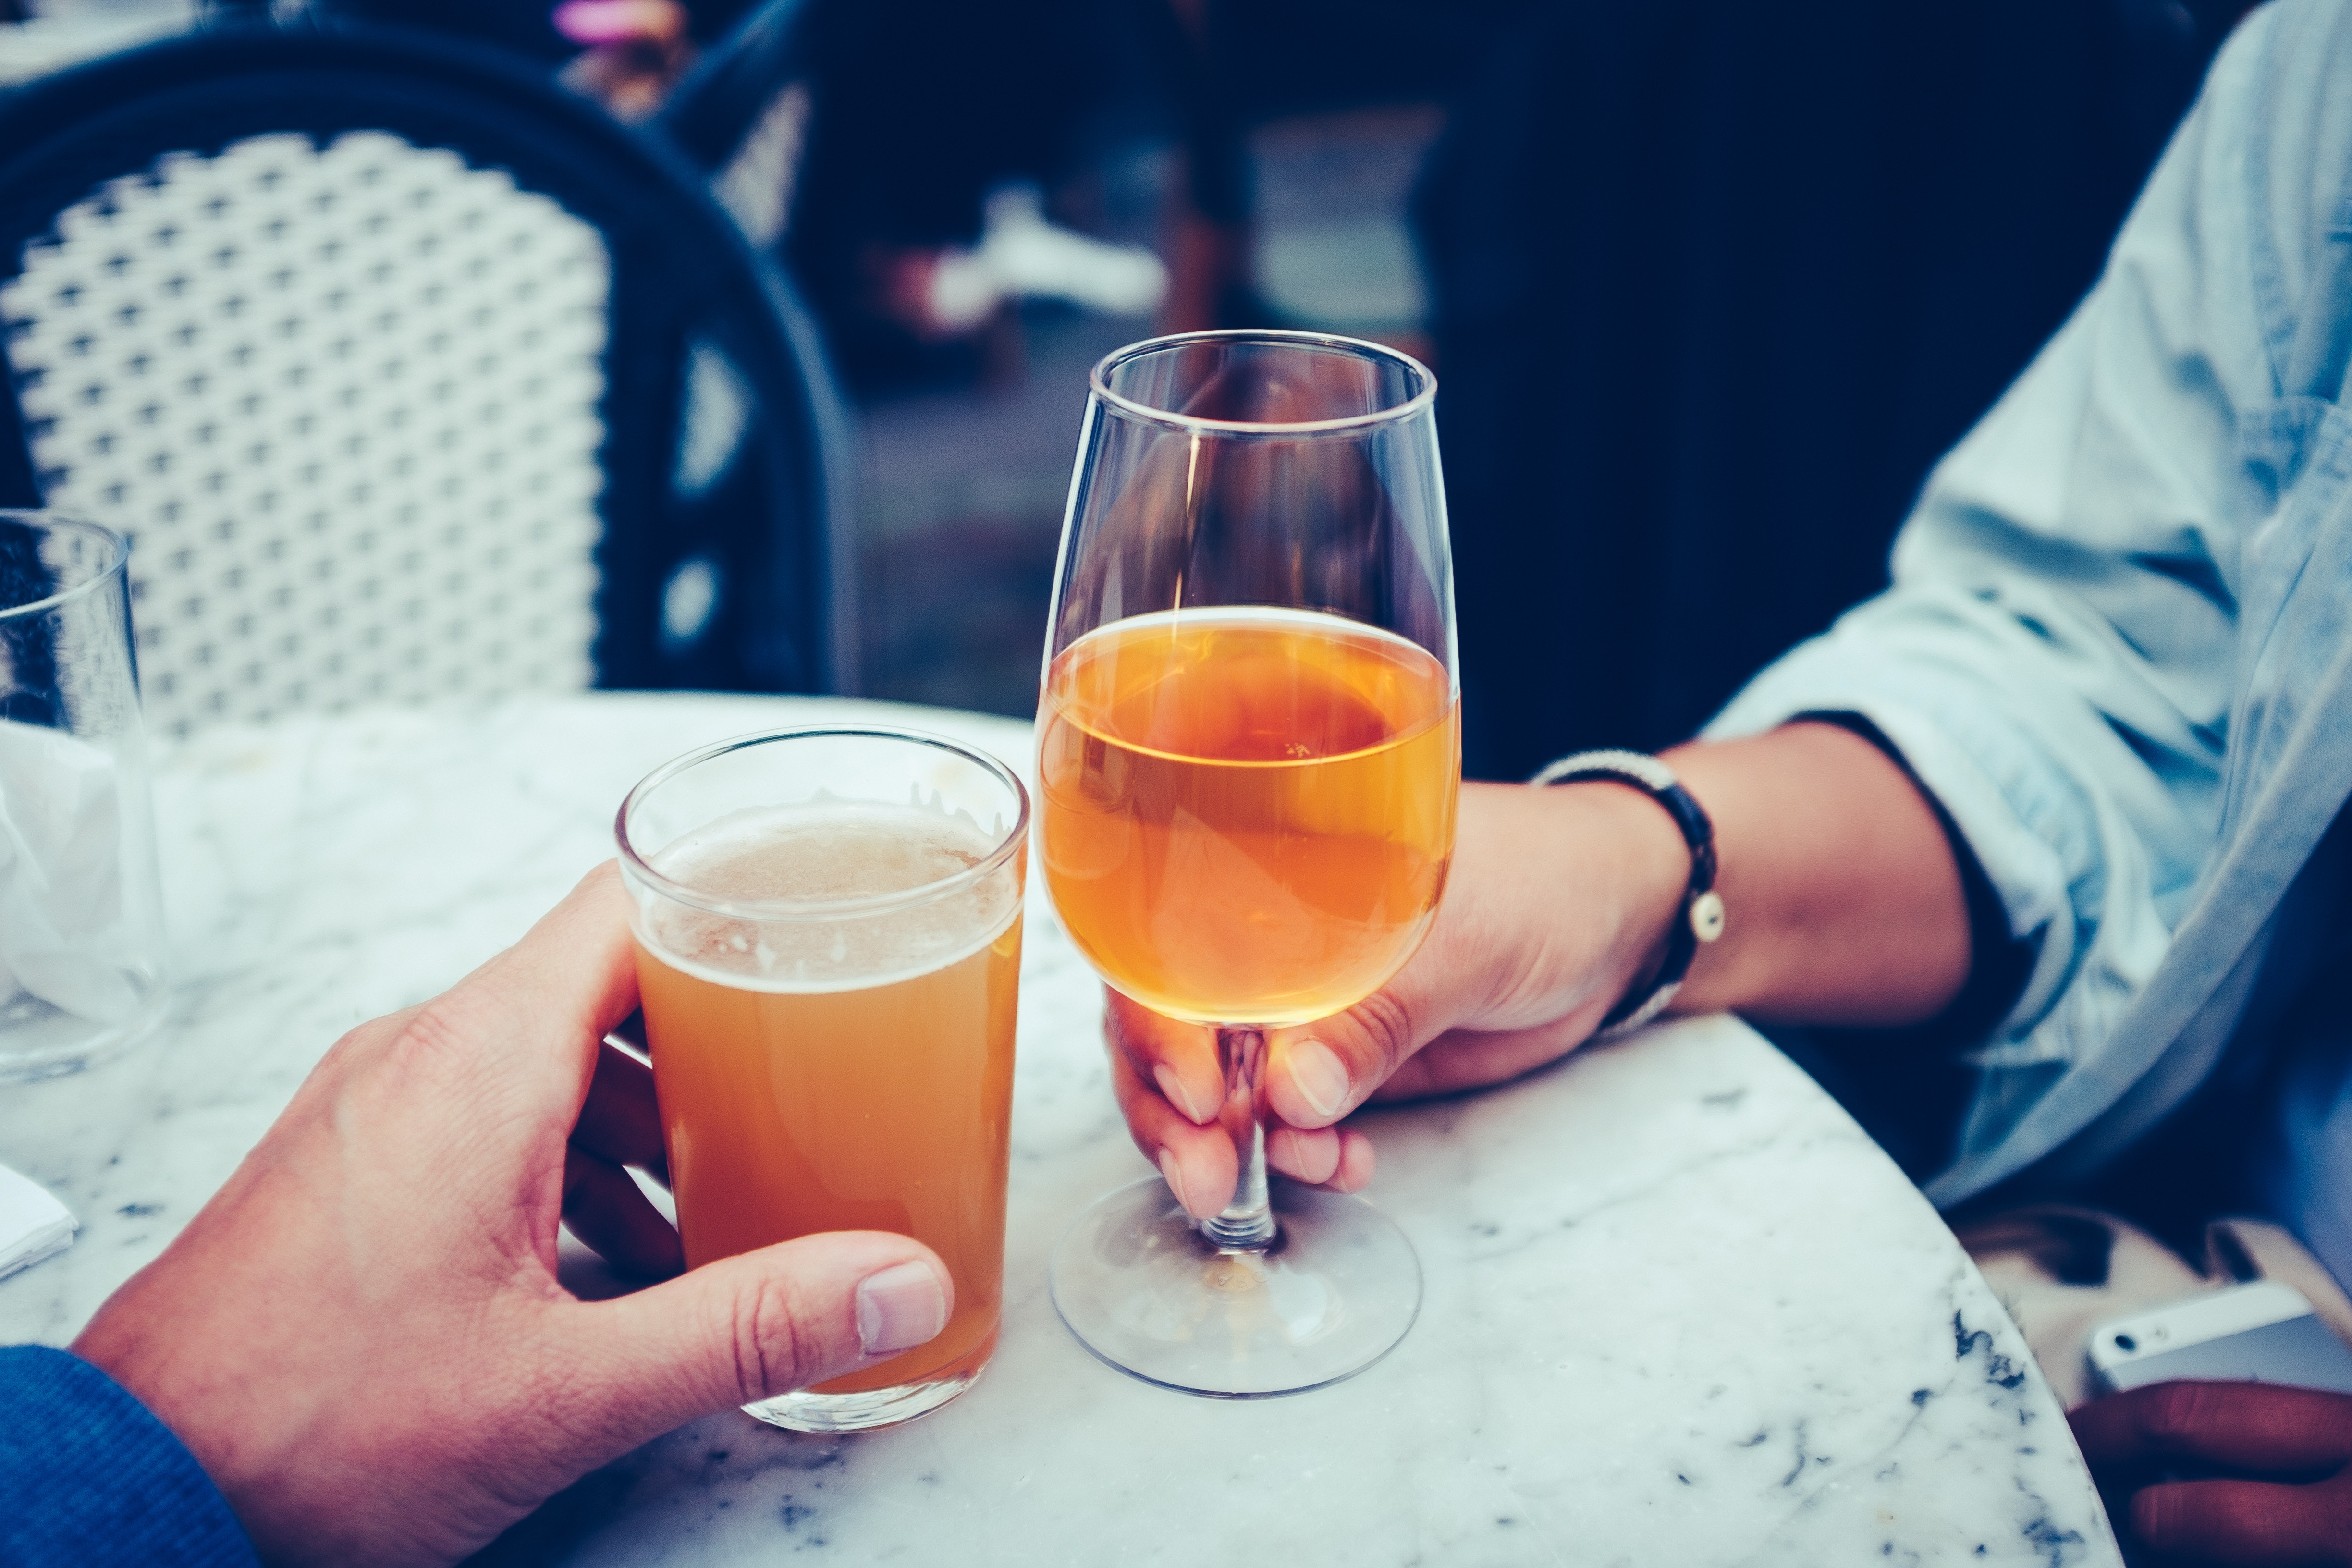 Just 2 Drinks Can Turn You Into a Total Twat, Science Says